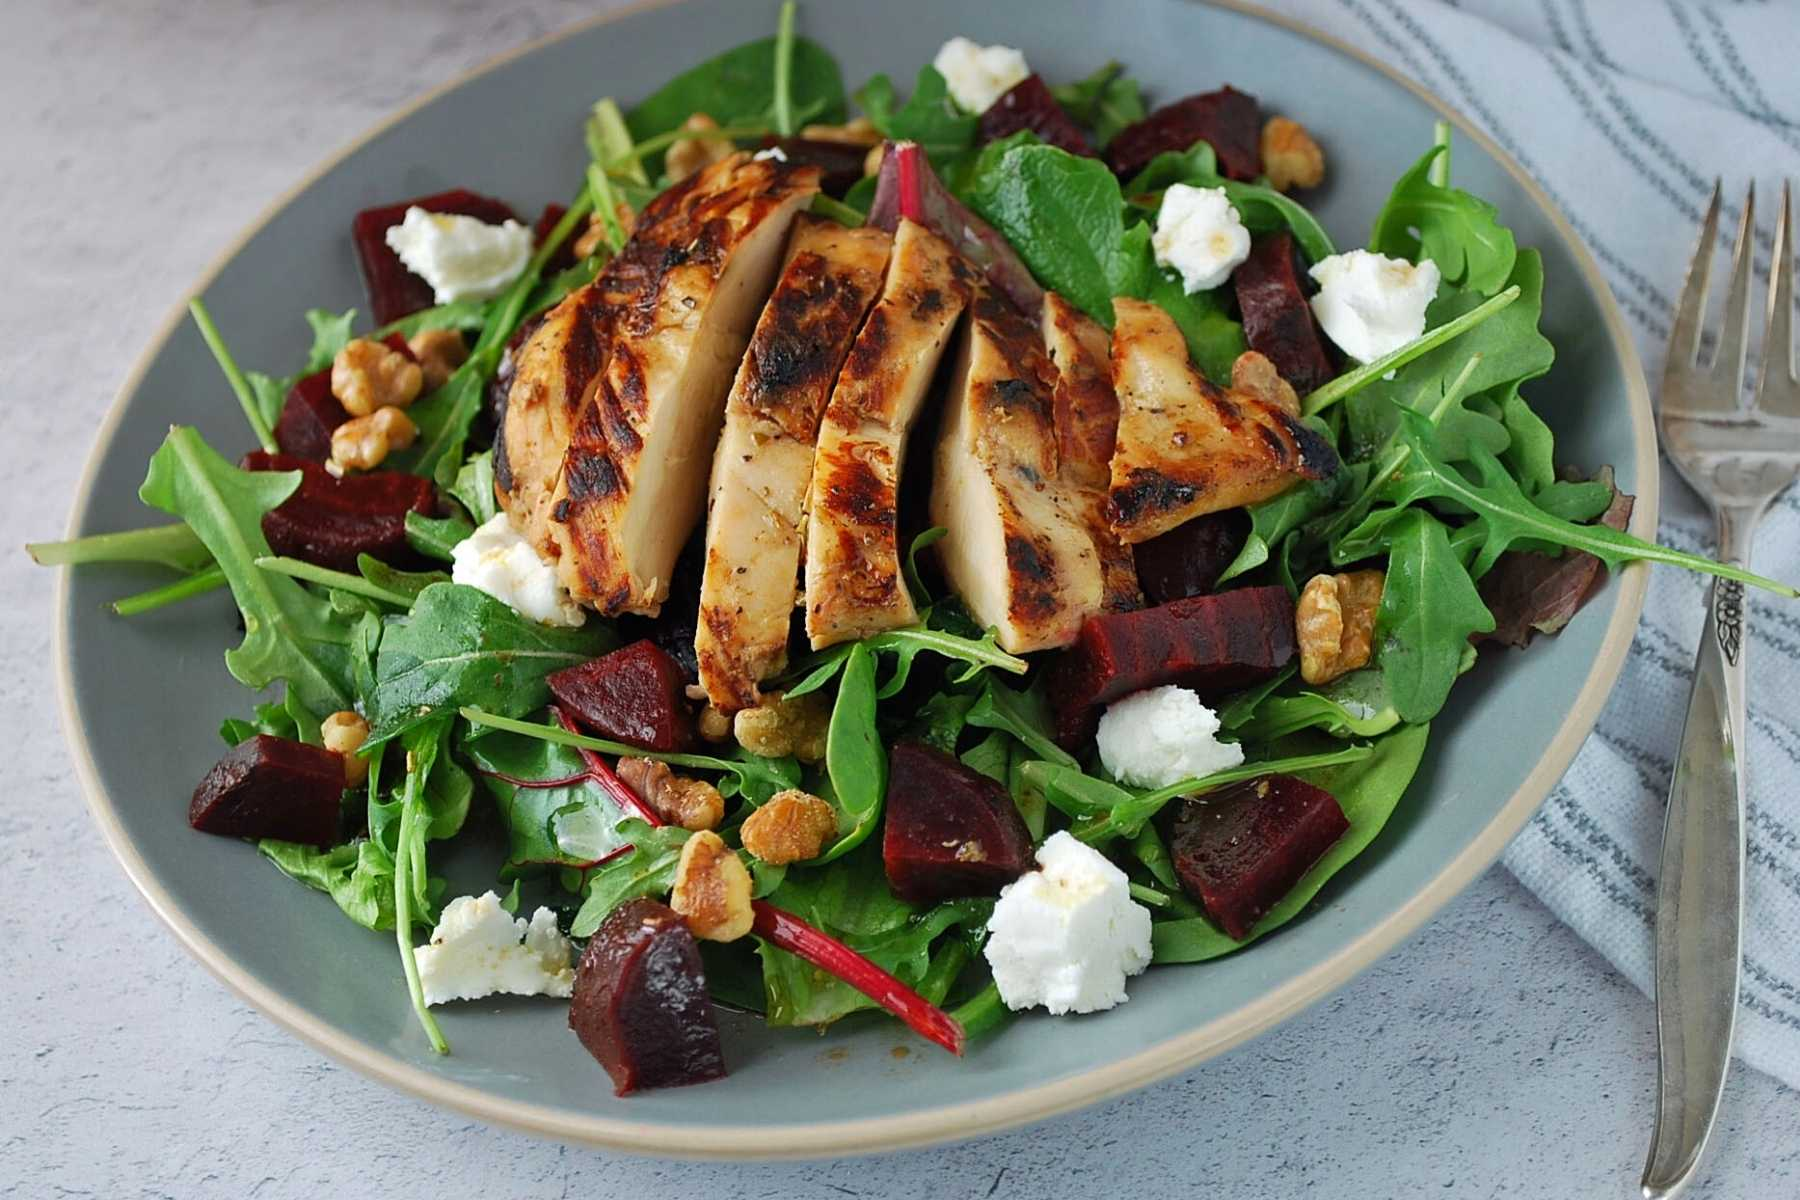 A salad plate with mixed greens, goat cheese, beets, walnuts, and grilled chicken on top